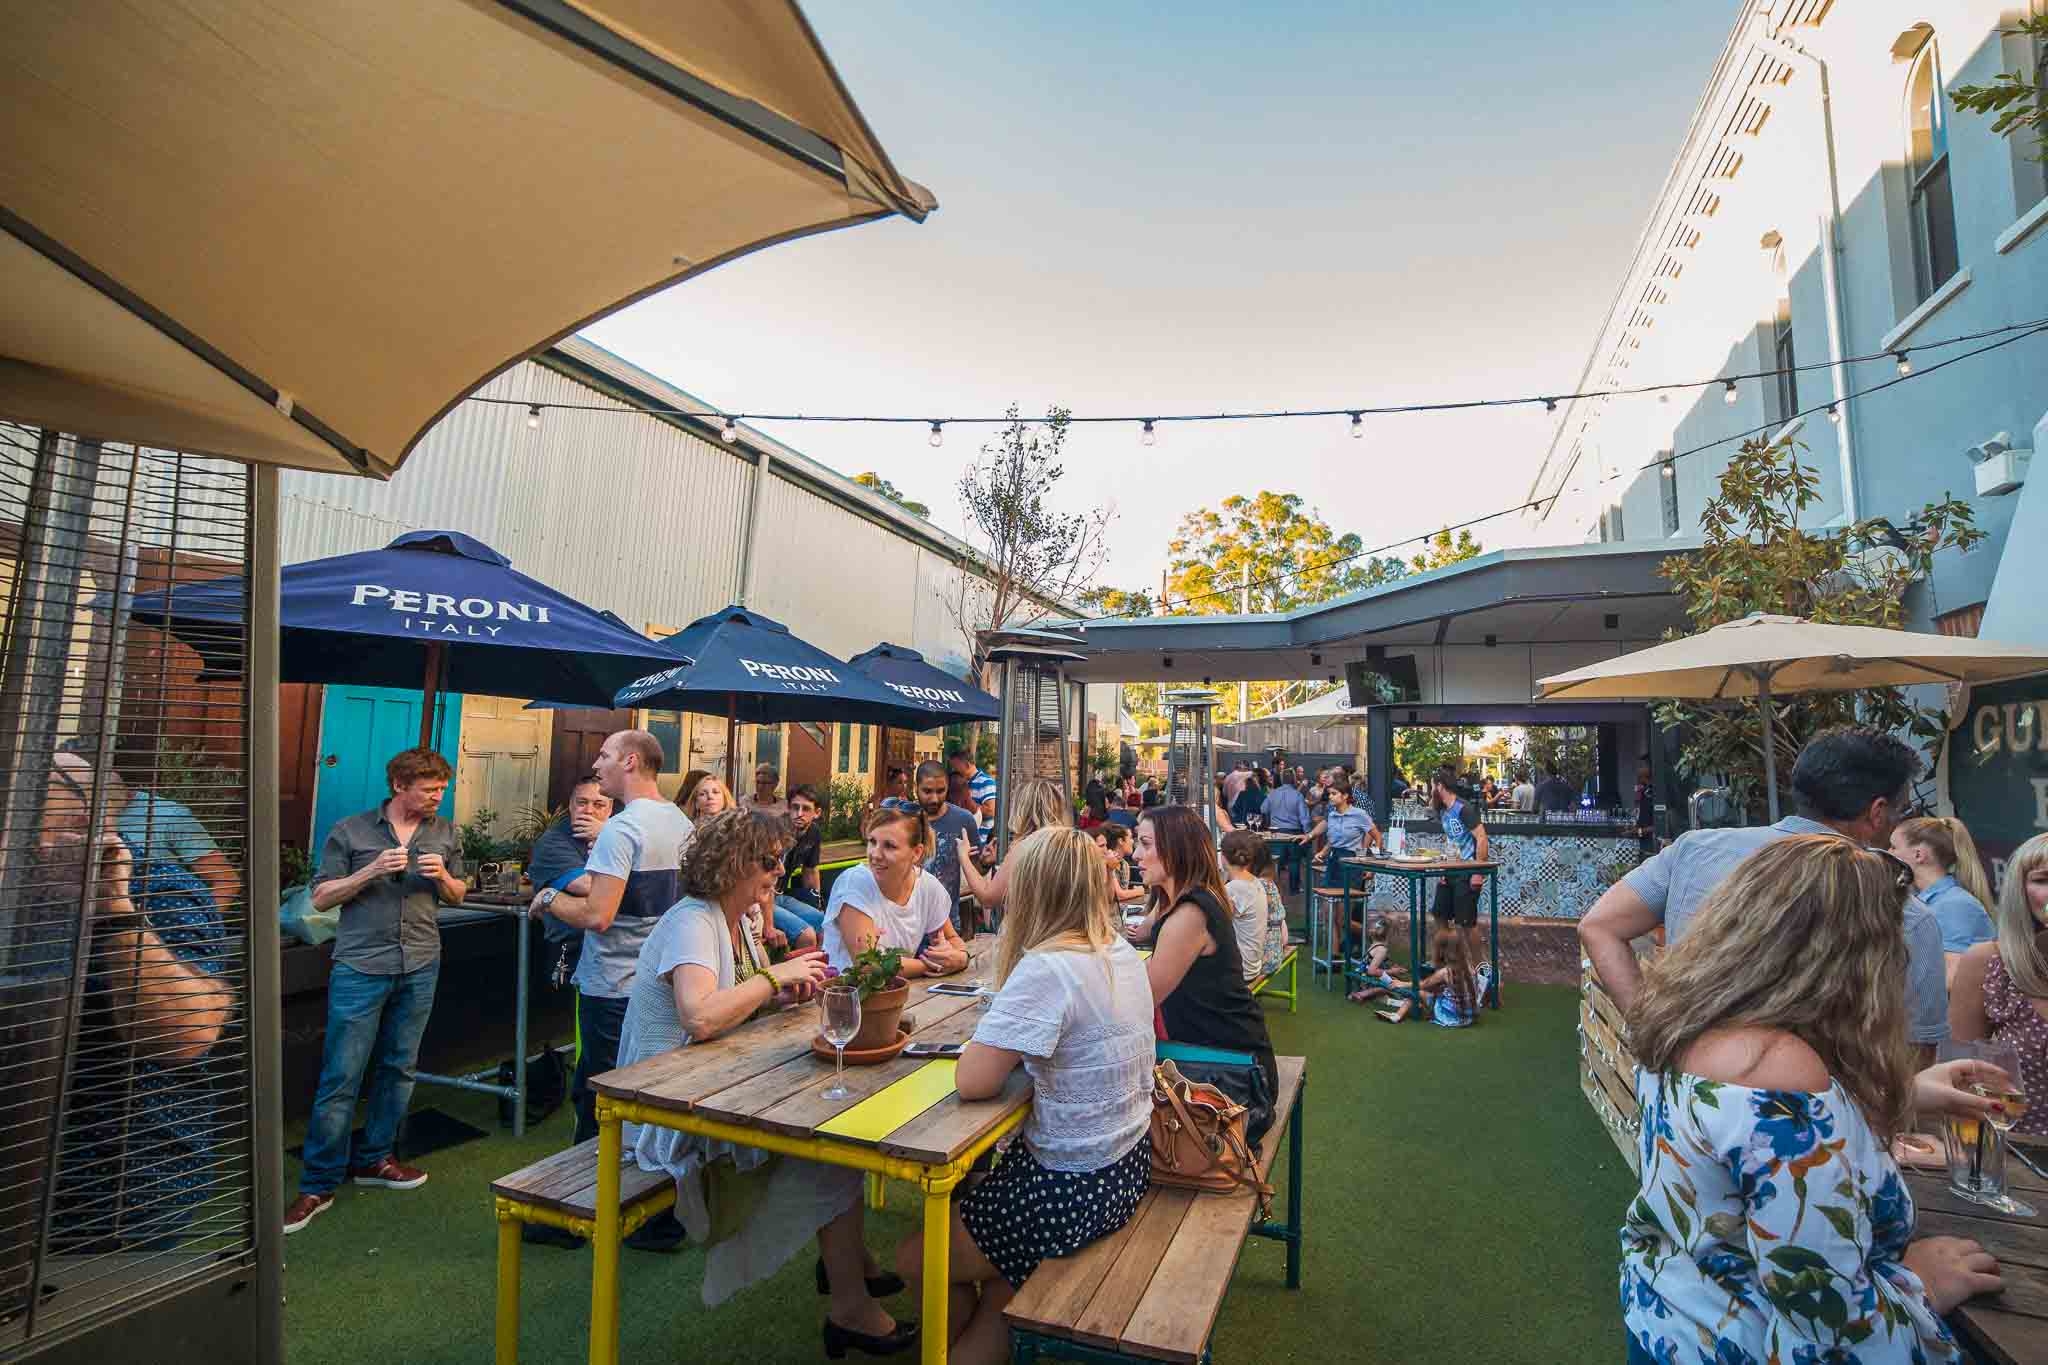 The-Guildford-Hotel-Bar-Bars-Perth-Pubs-Pub-Iconic-Cocktail-Outdoors-Beergardens-Top-Best-Good-007